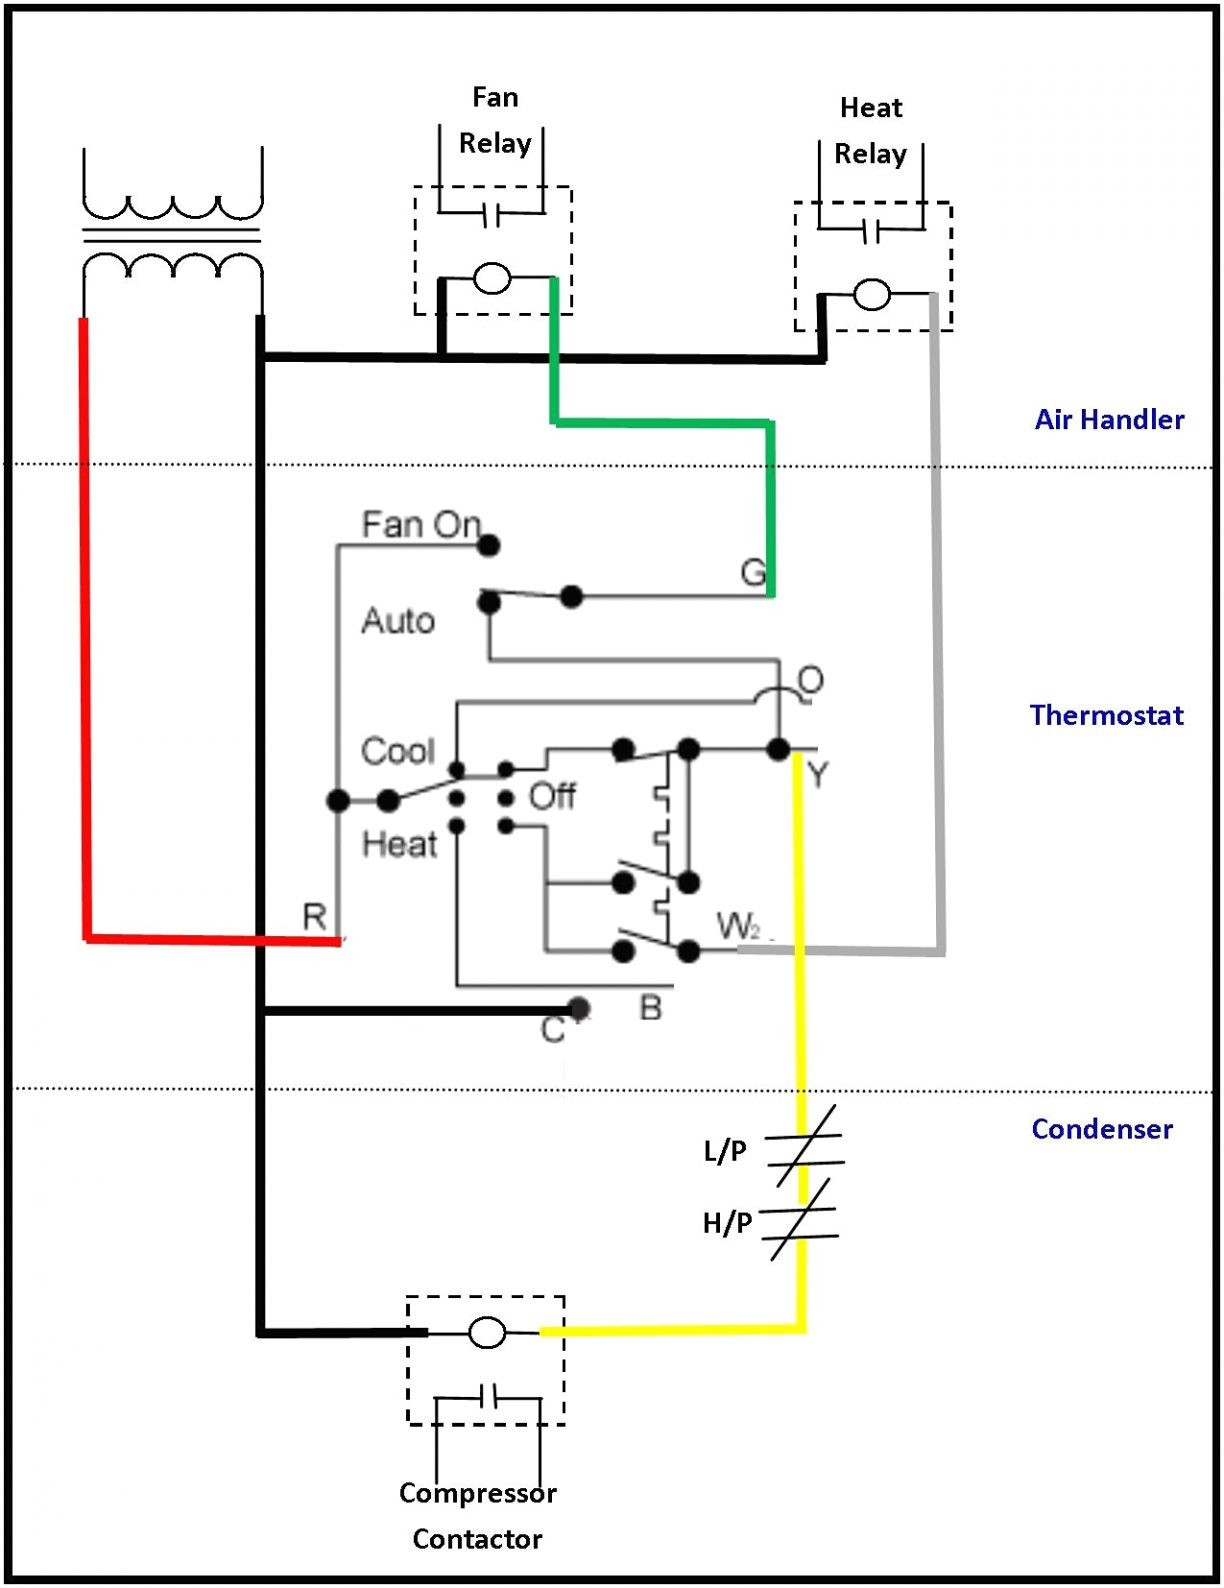 honeywell thermostat ct87n wiring diagram Collection-Honeywell Thermostat Ct87n Wiring Diagram 8-p